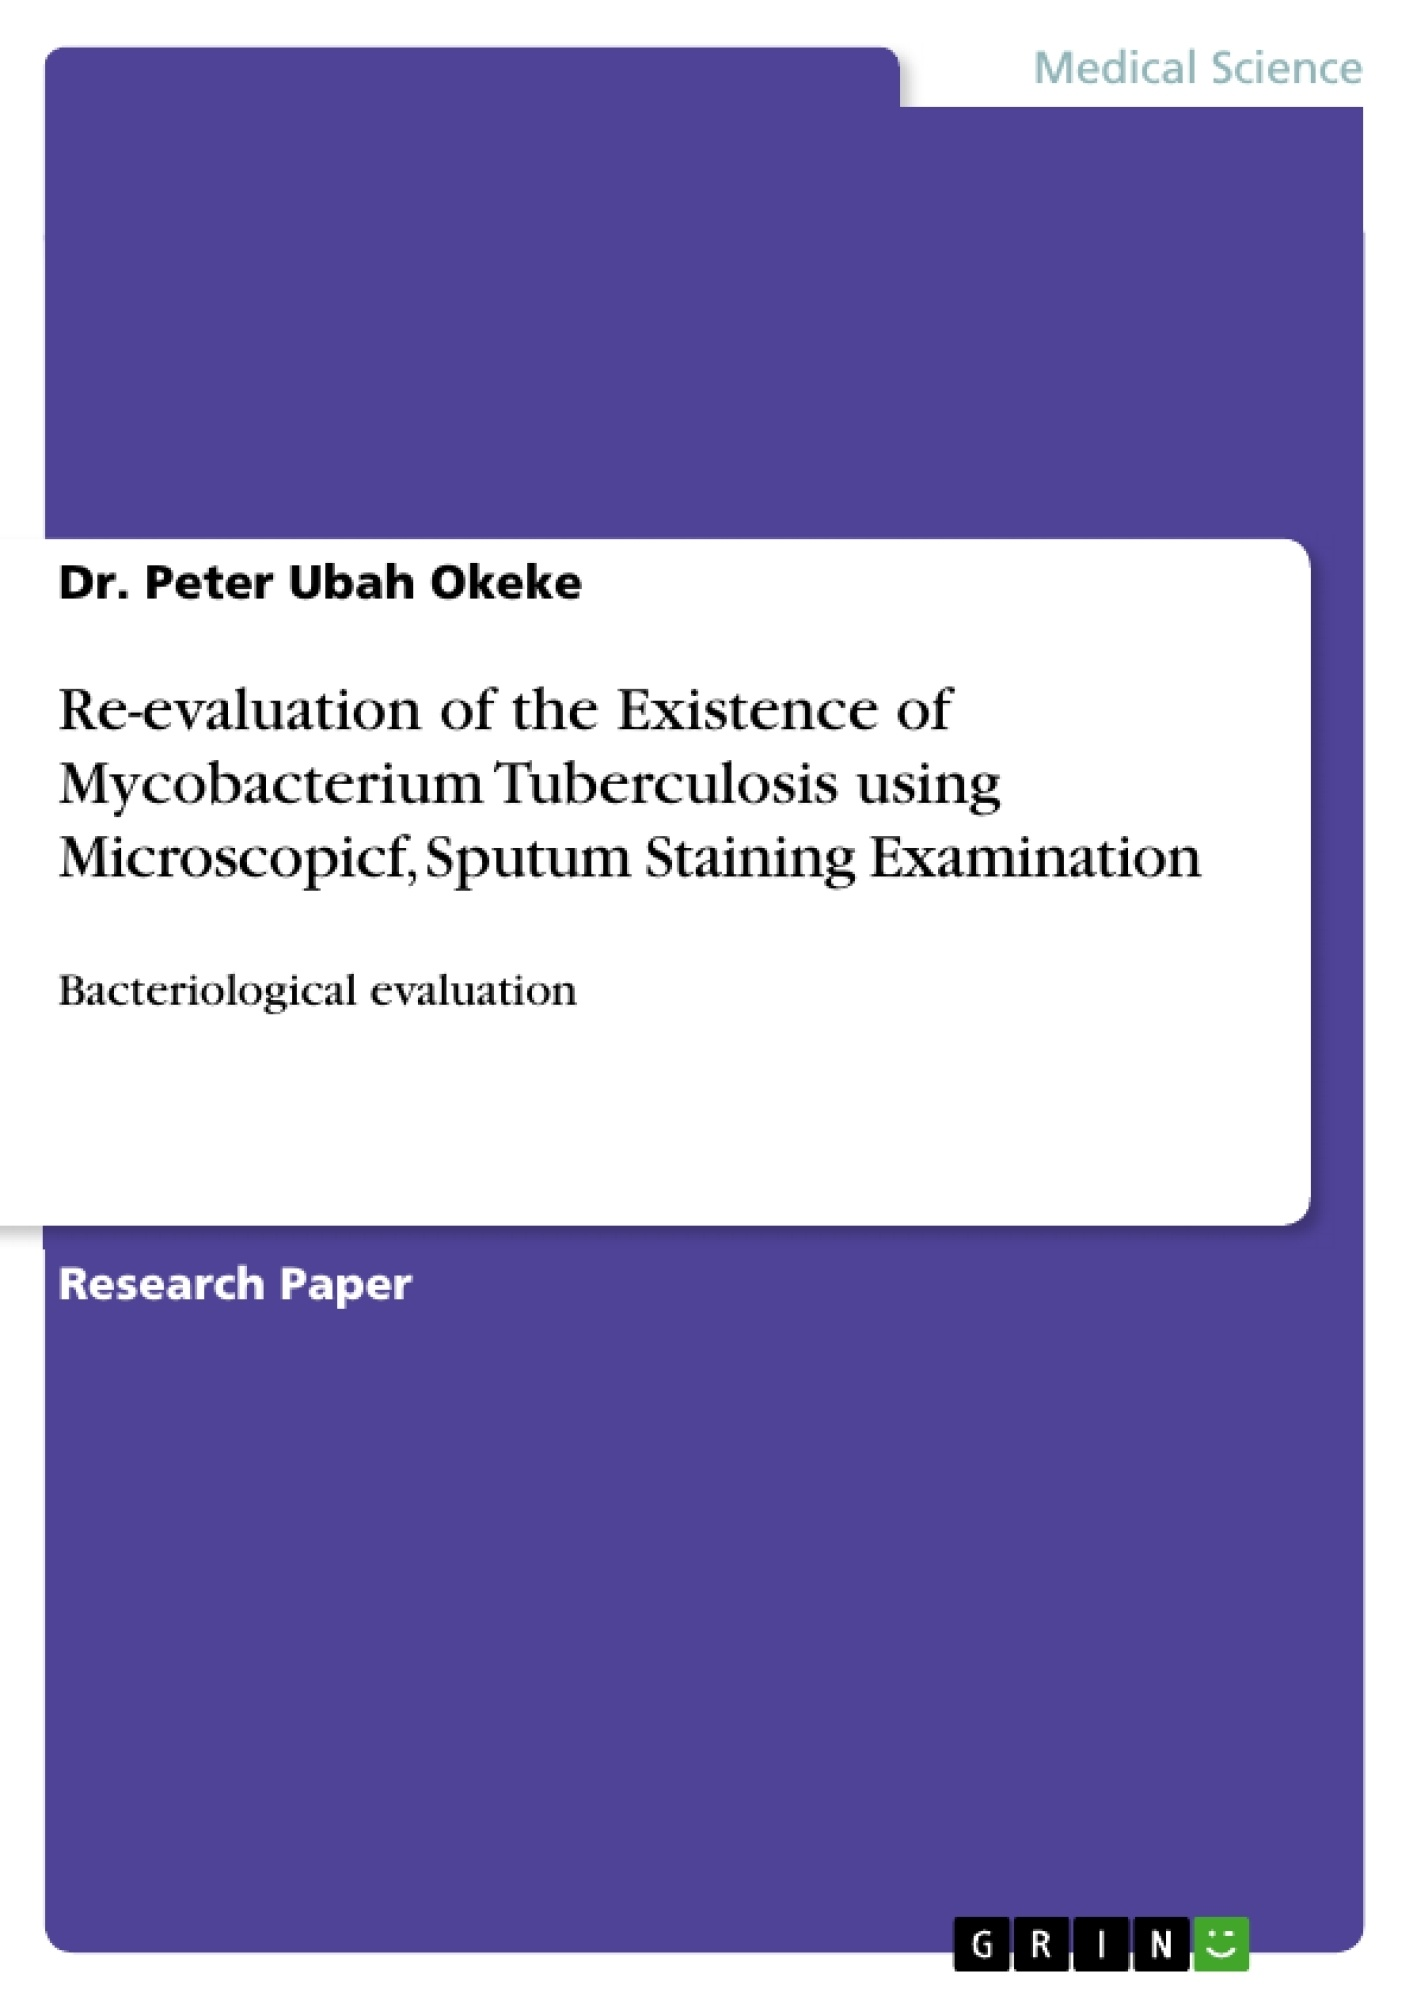 Title: Re-evaluation of the Existence of Mycobacterium Tuberculosis using Microscopicf, Sputum Staining Examination